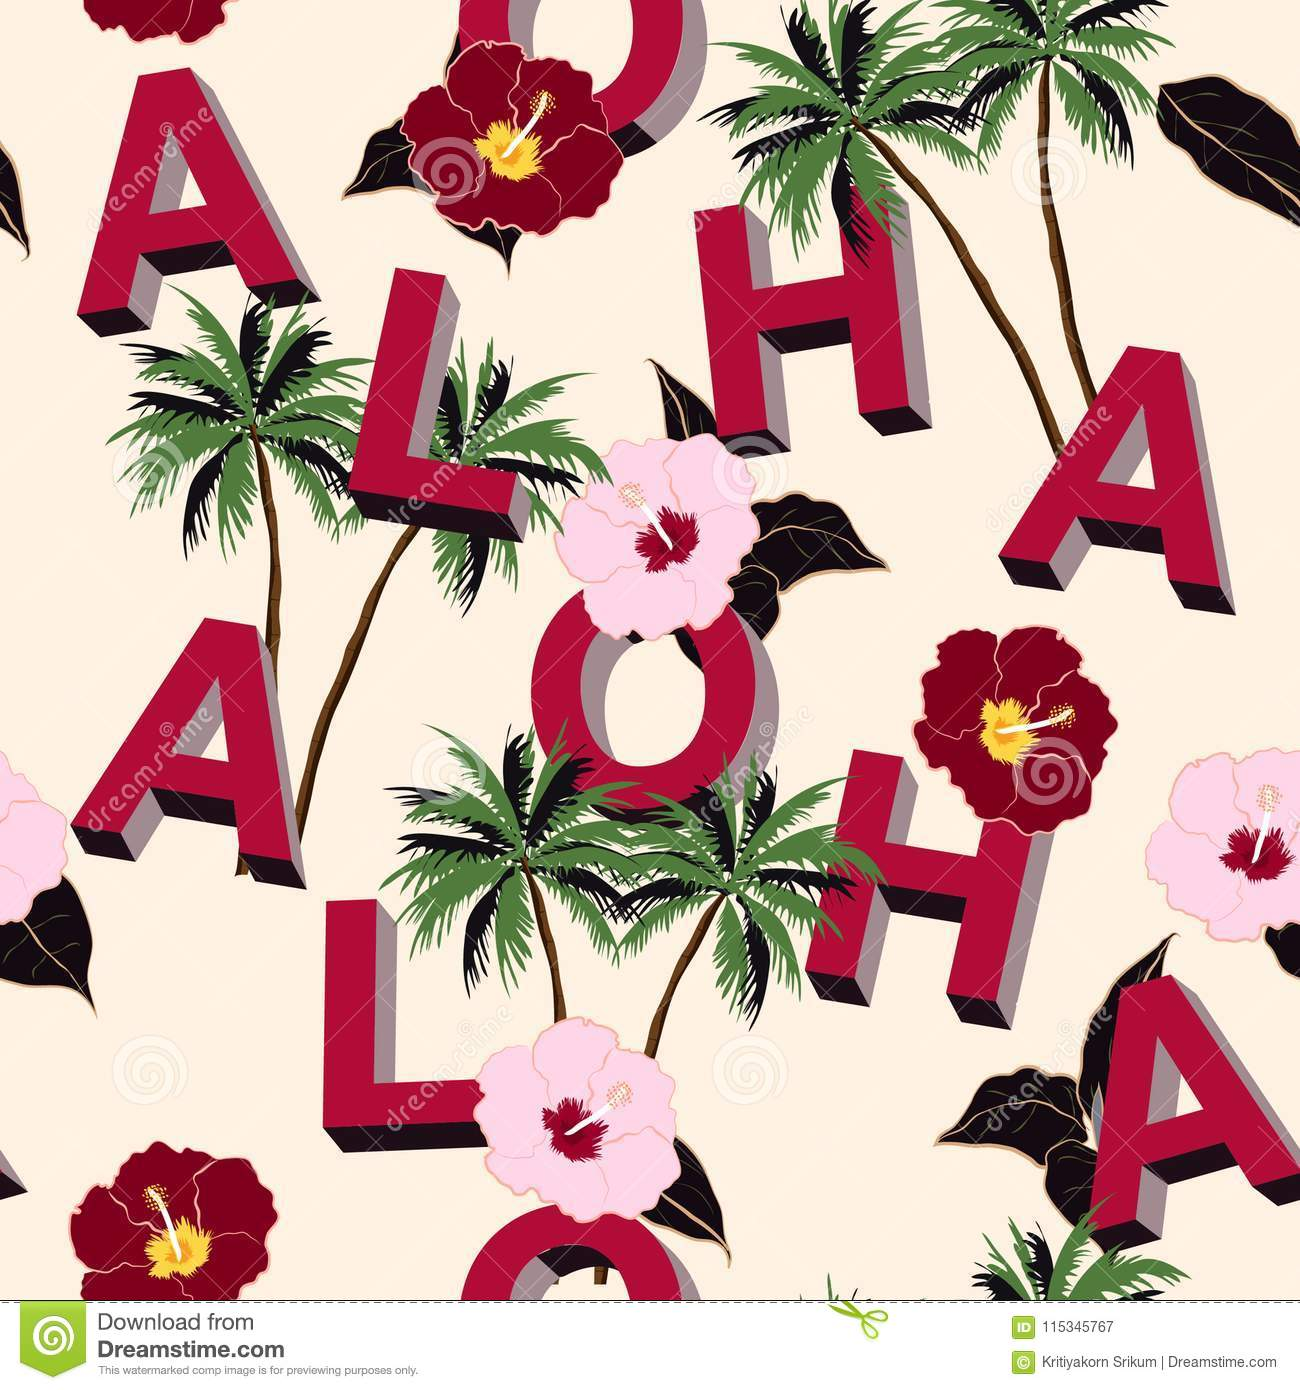 Trendy and Beautiful seamless 3D typo ALOHA mix with summer motive pattern on light pink background. Landscape with palm